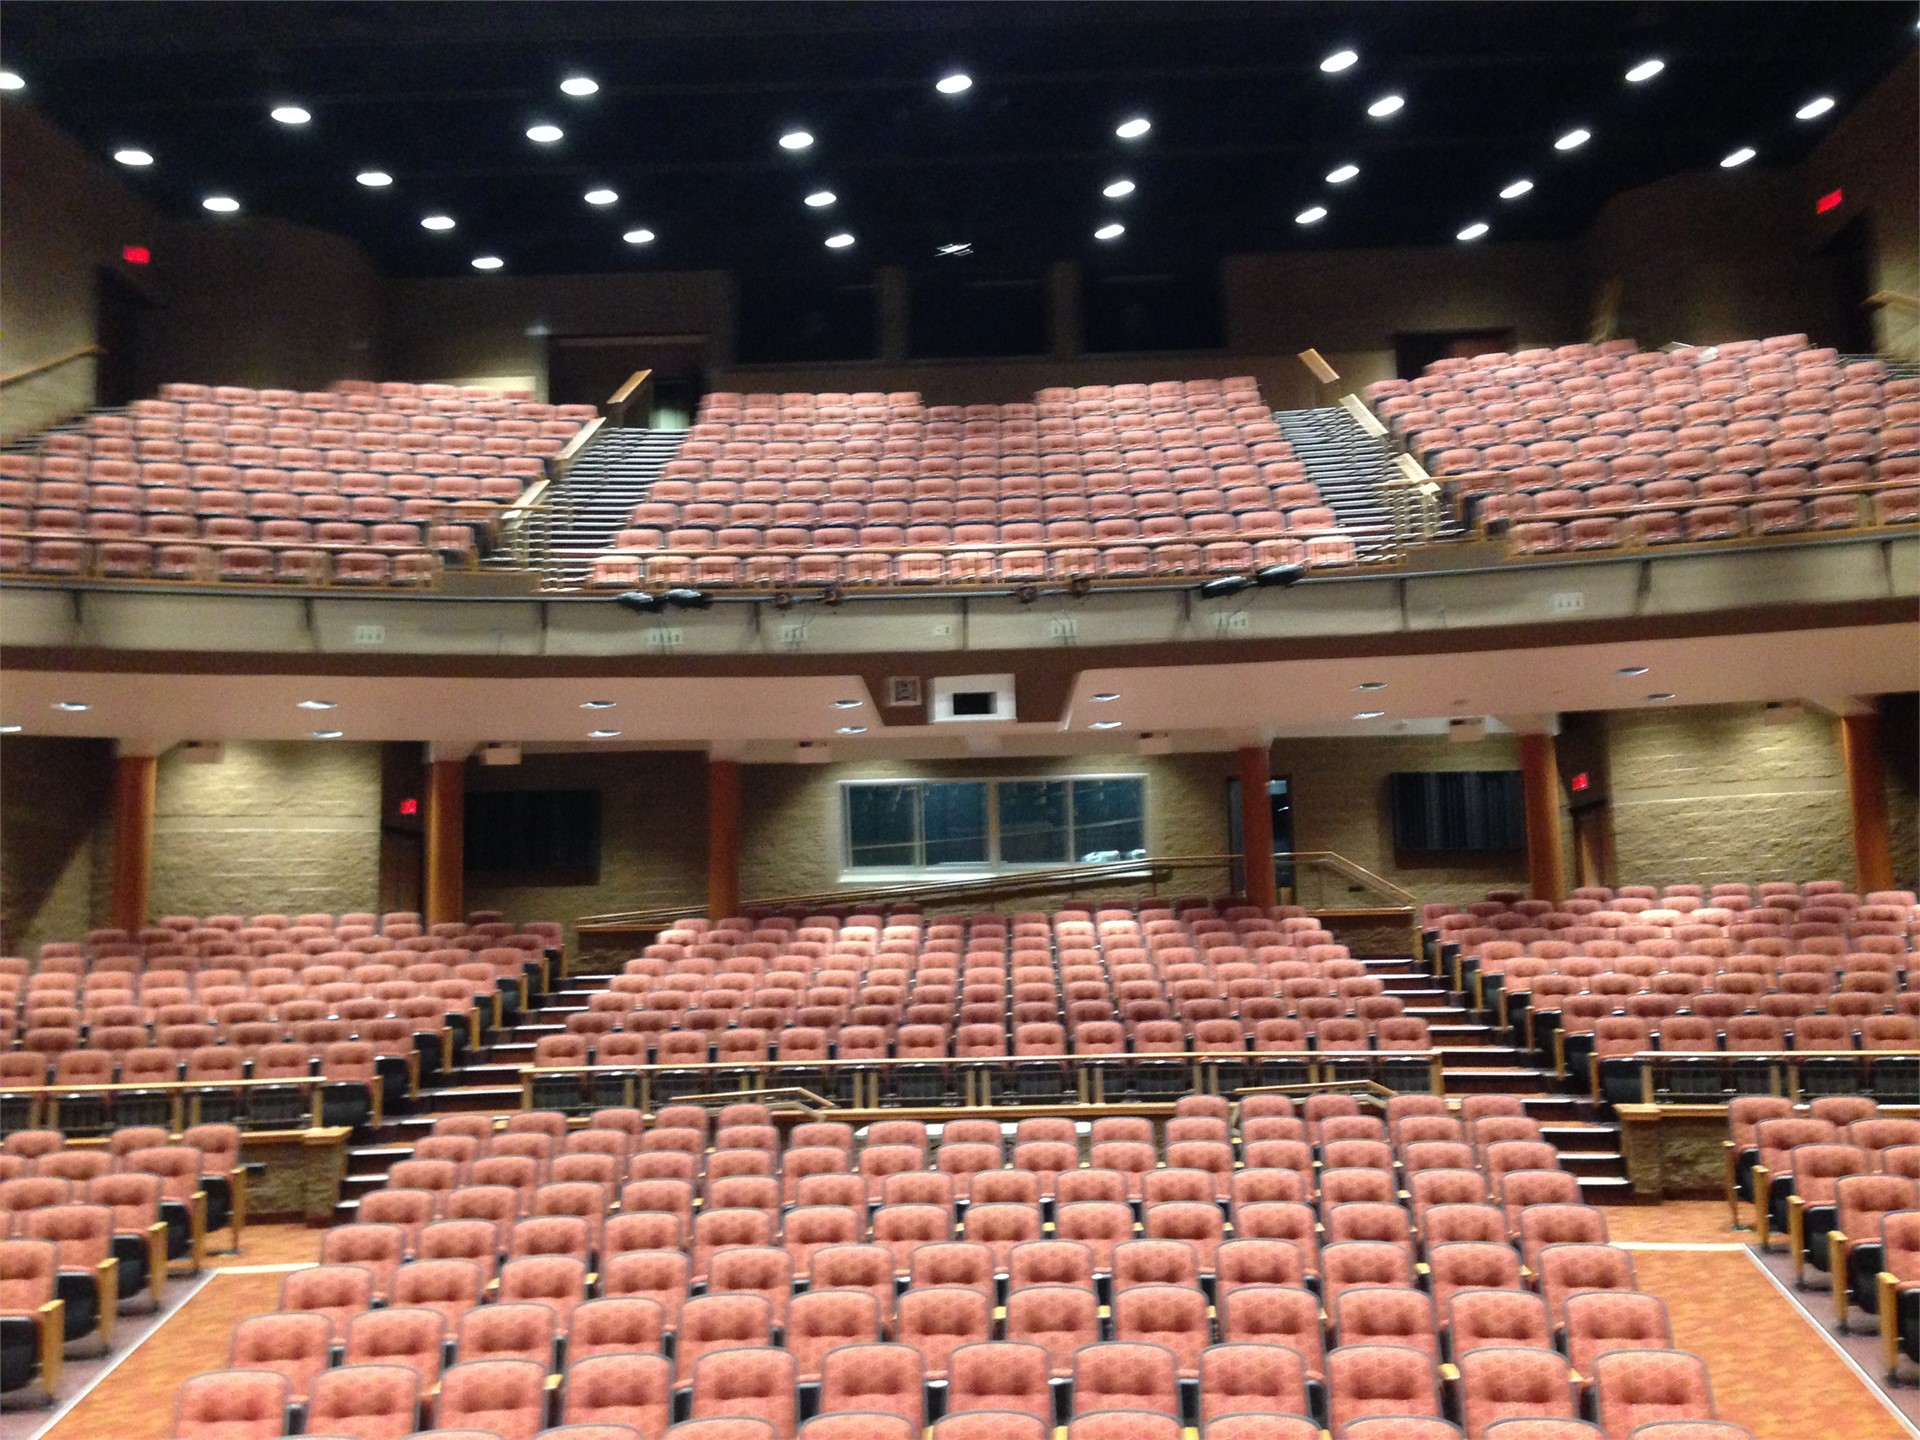 Picture of seating from center stage